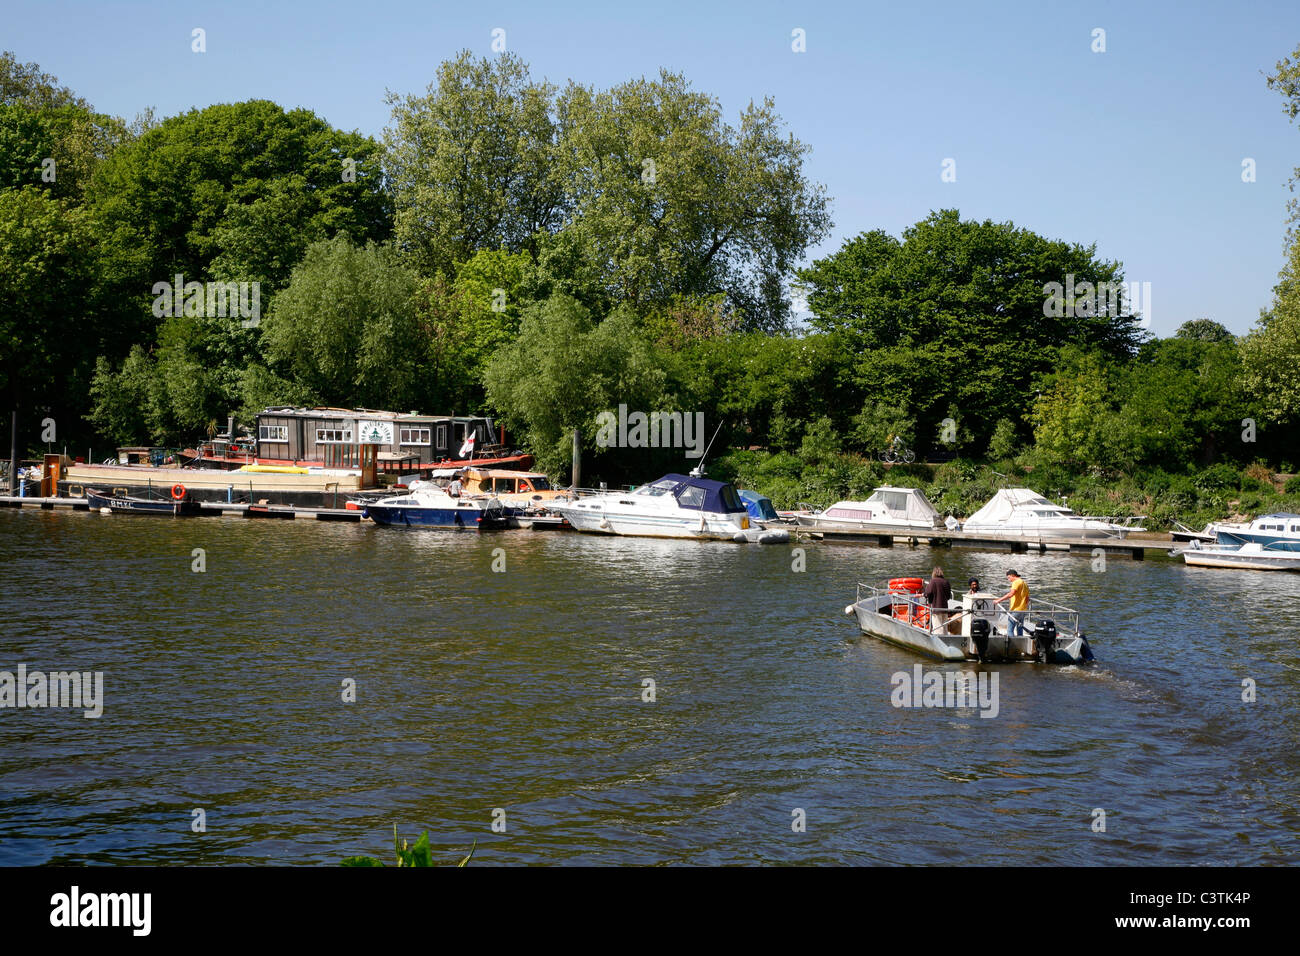 Hammerton Ferry crossing the River Thames from Ham to Twickenham, London, UK - Stock Image